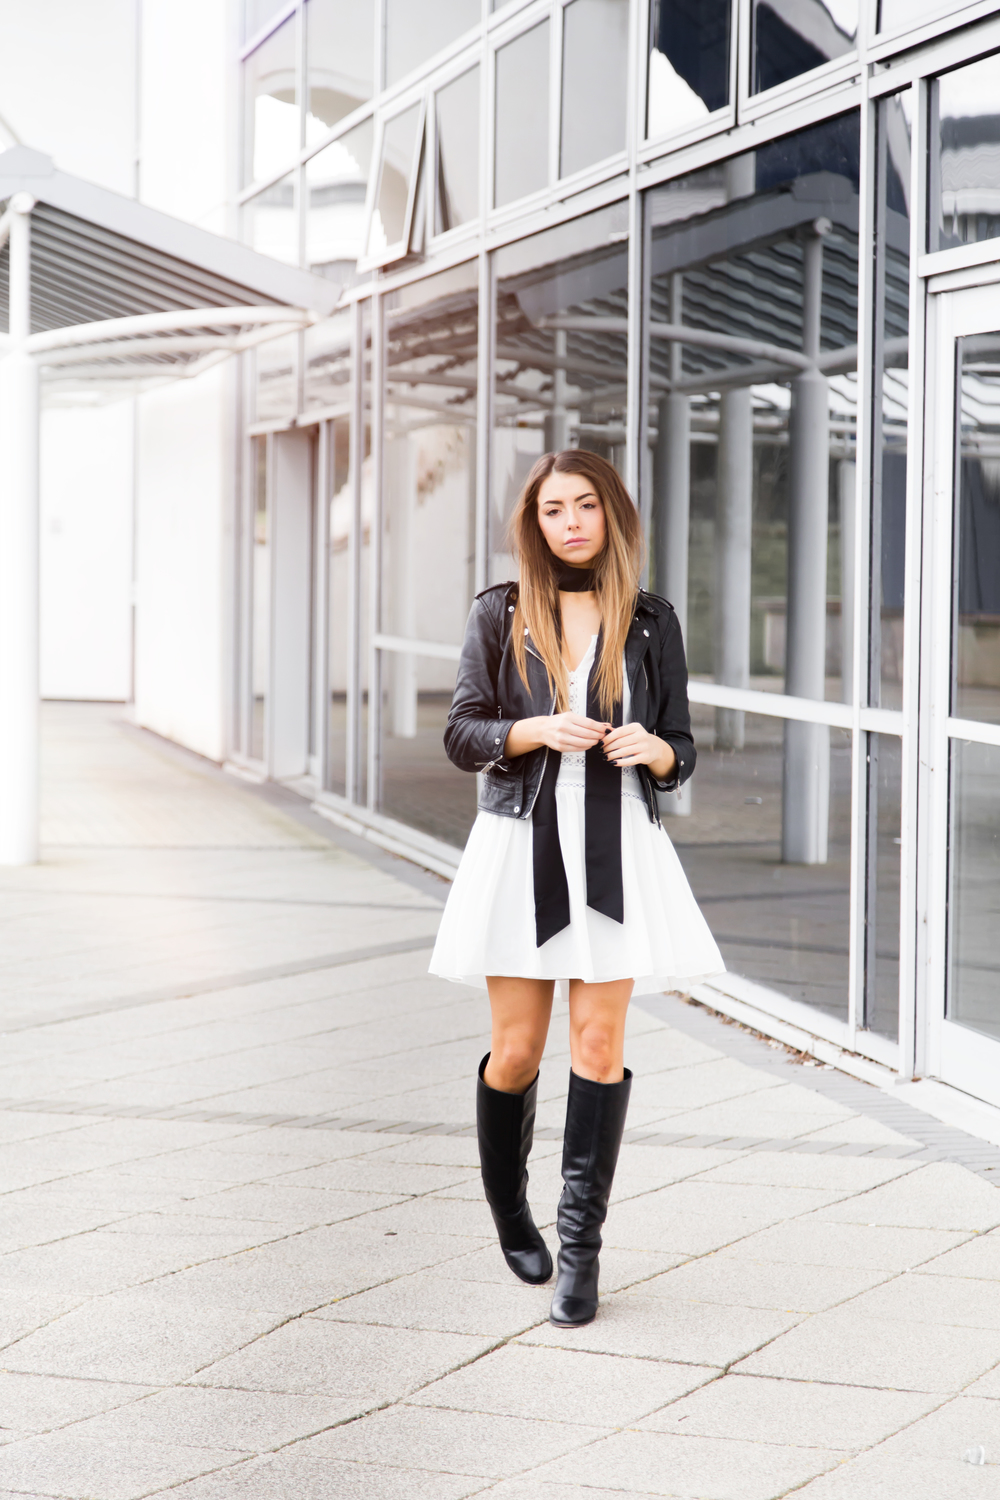 Do we share too much on social media? How to wear knee high boots